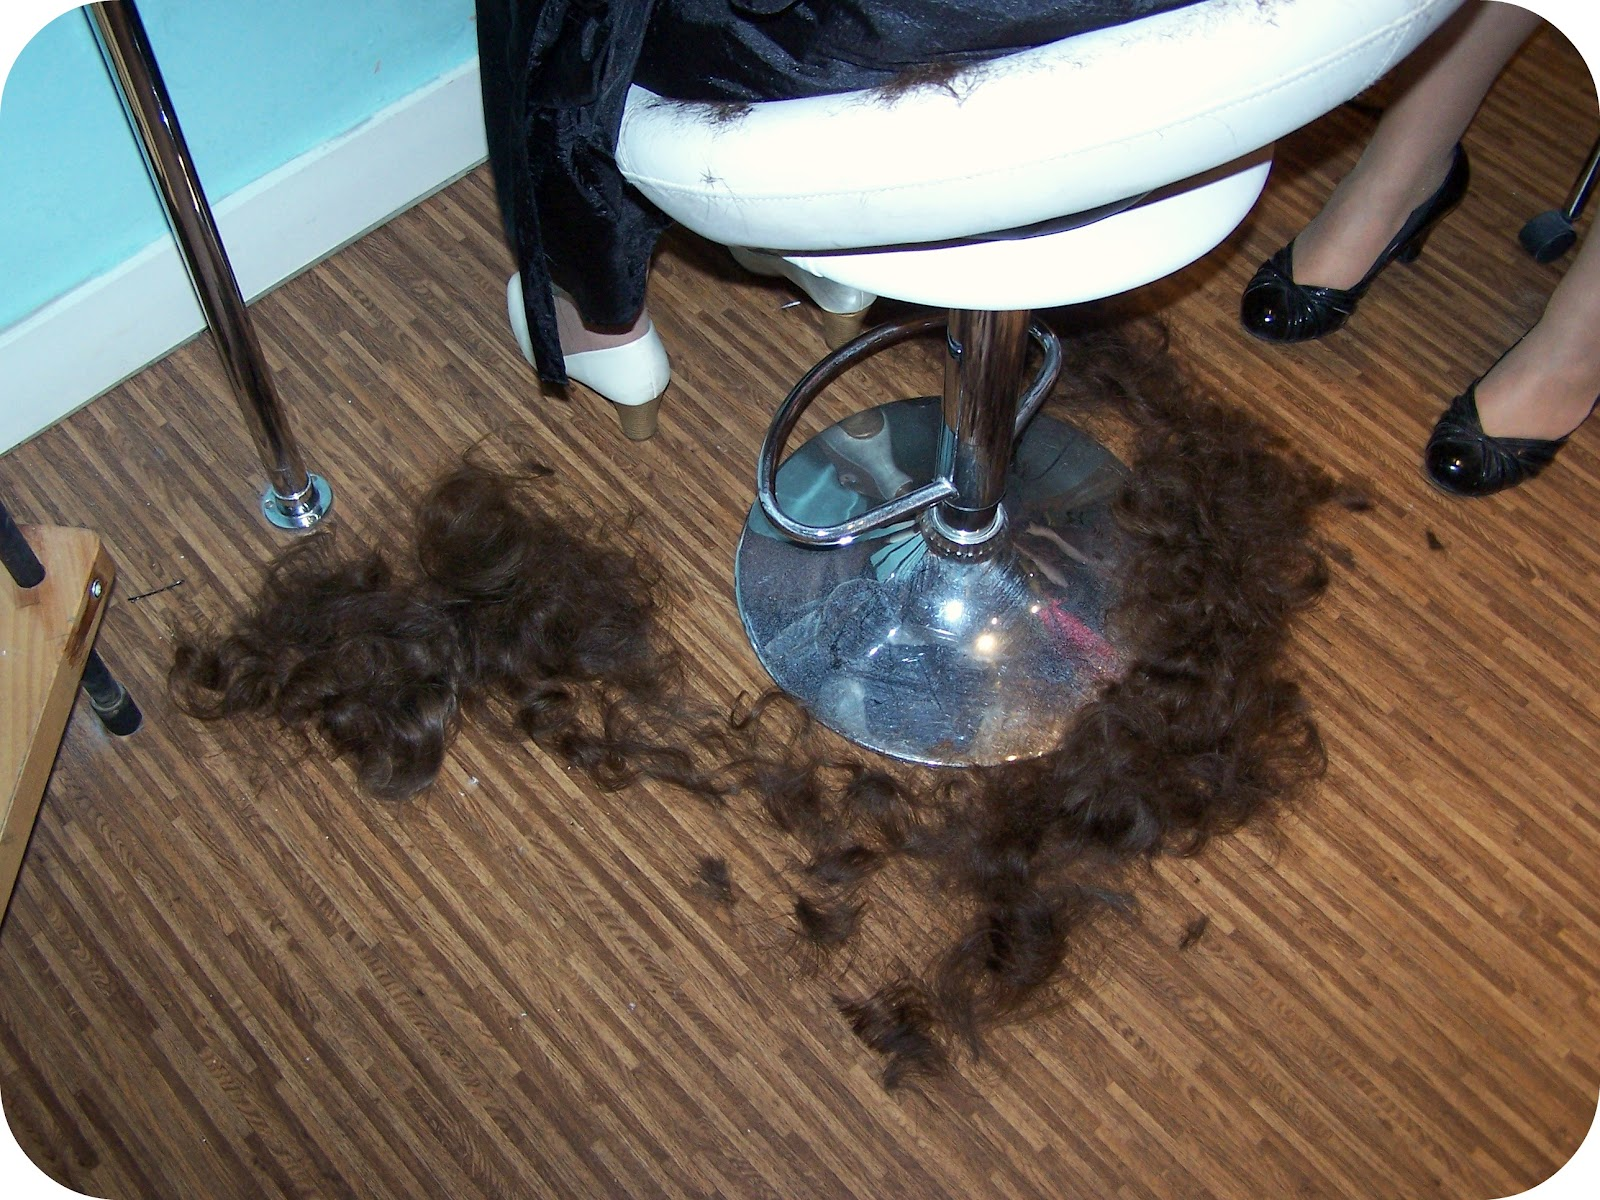 Cut Hair On Floor